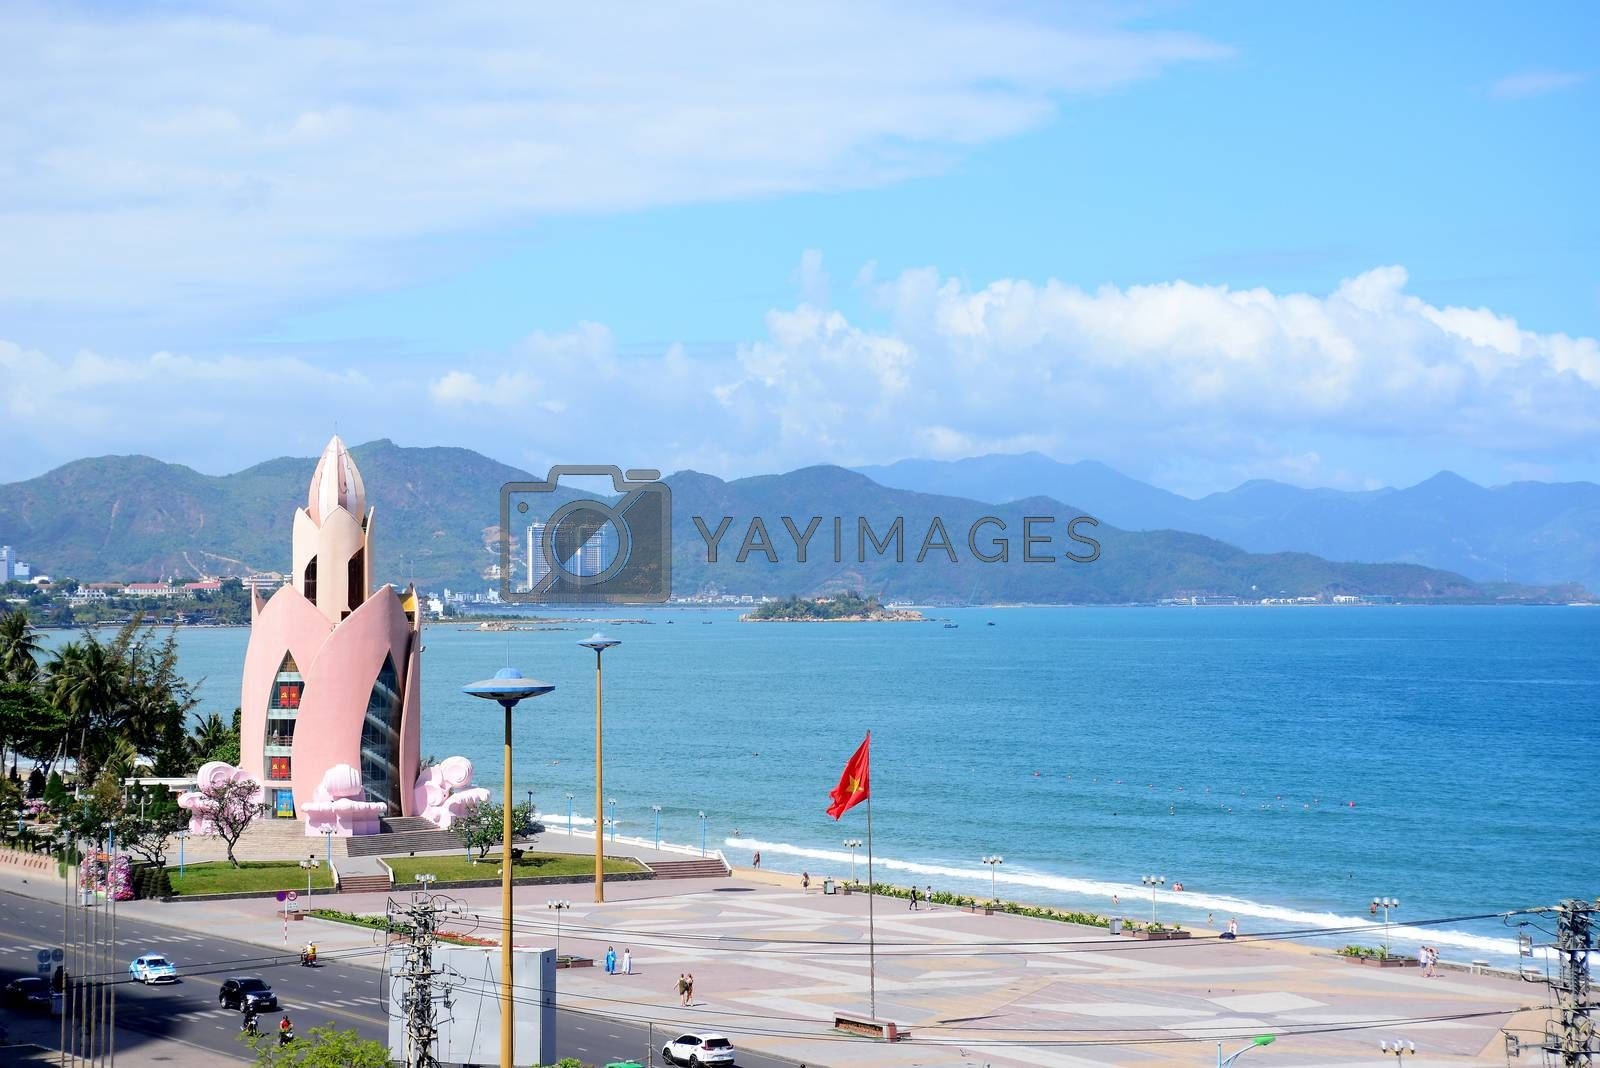 NHA TRANG, VIETNAM – 29 FEBRUARY 2020 : Tram Huong Tower, which is located in the center of the city, is considered as the symbol of Nha Trang city